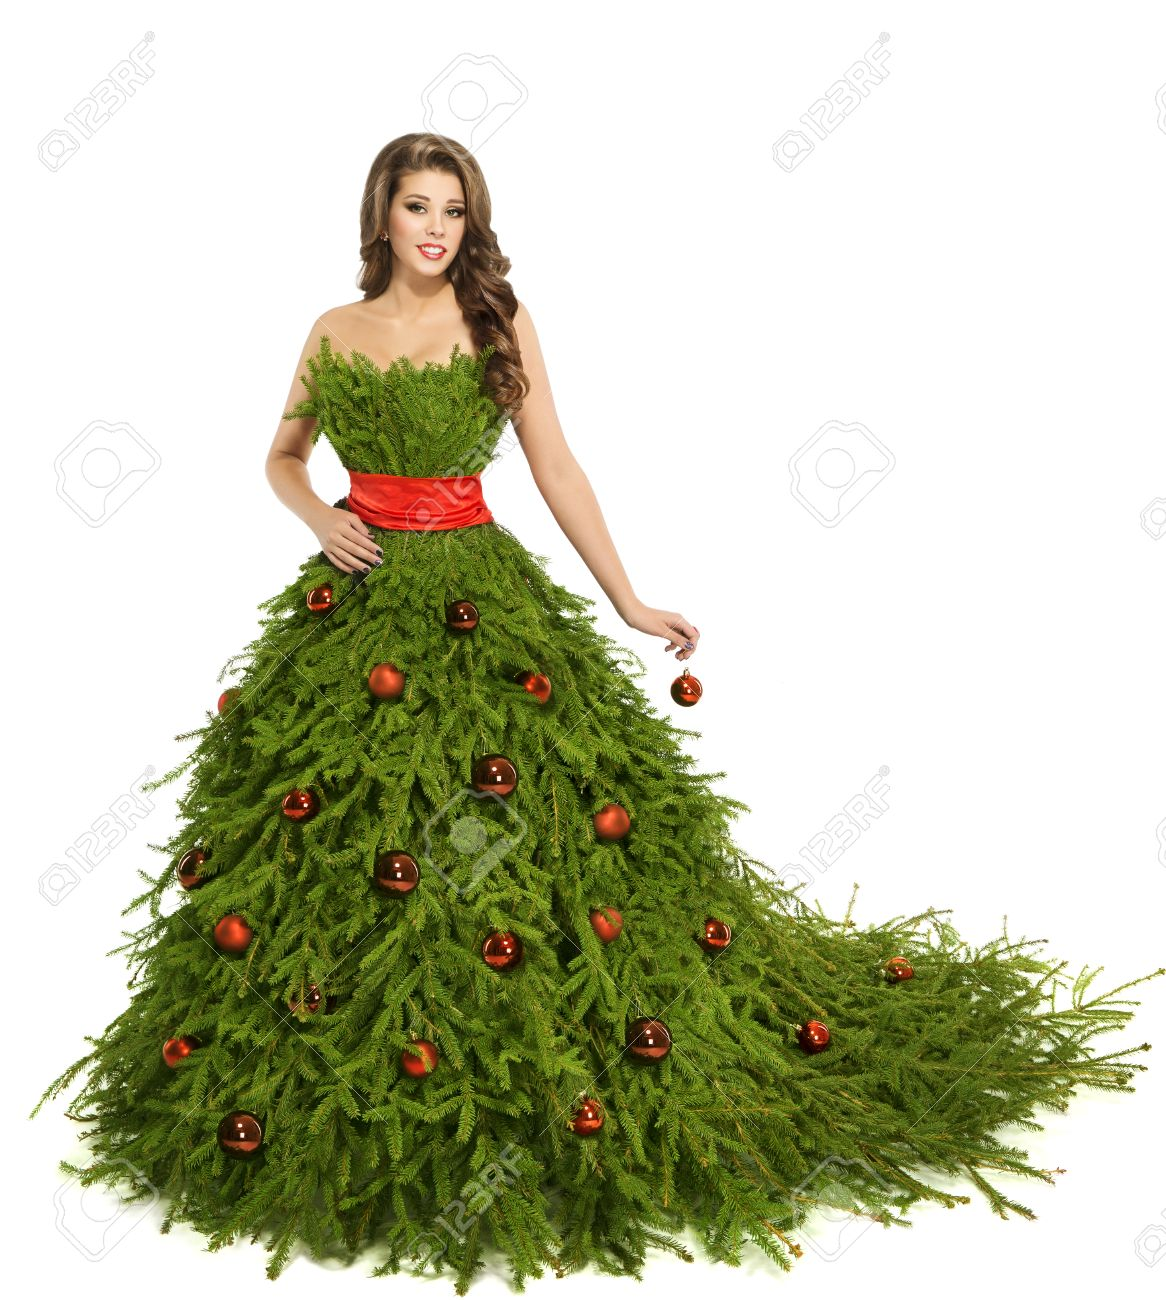 Christmas Tree Woman Dress Fashion Model Isolated On White Stock